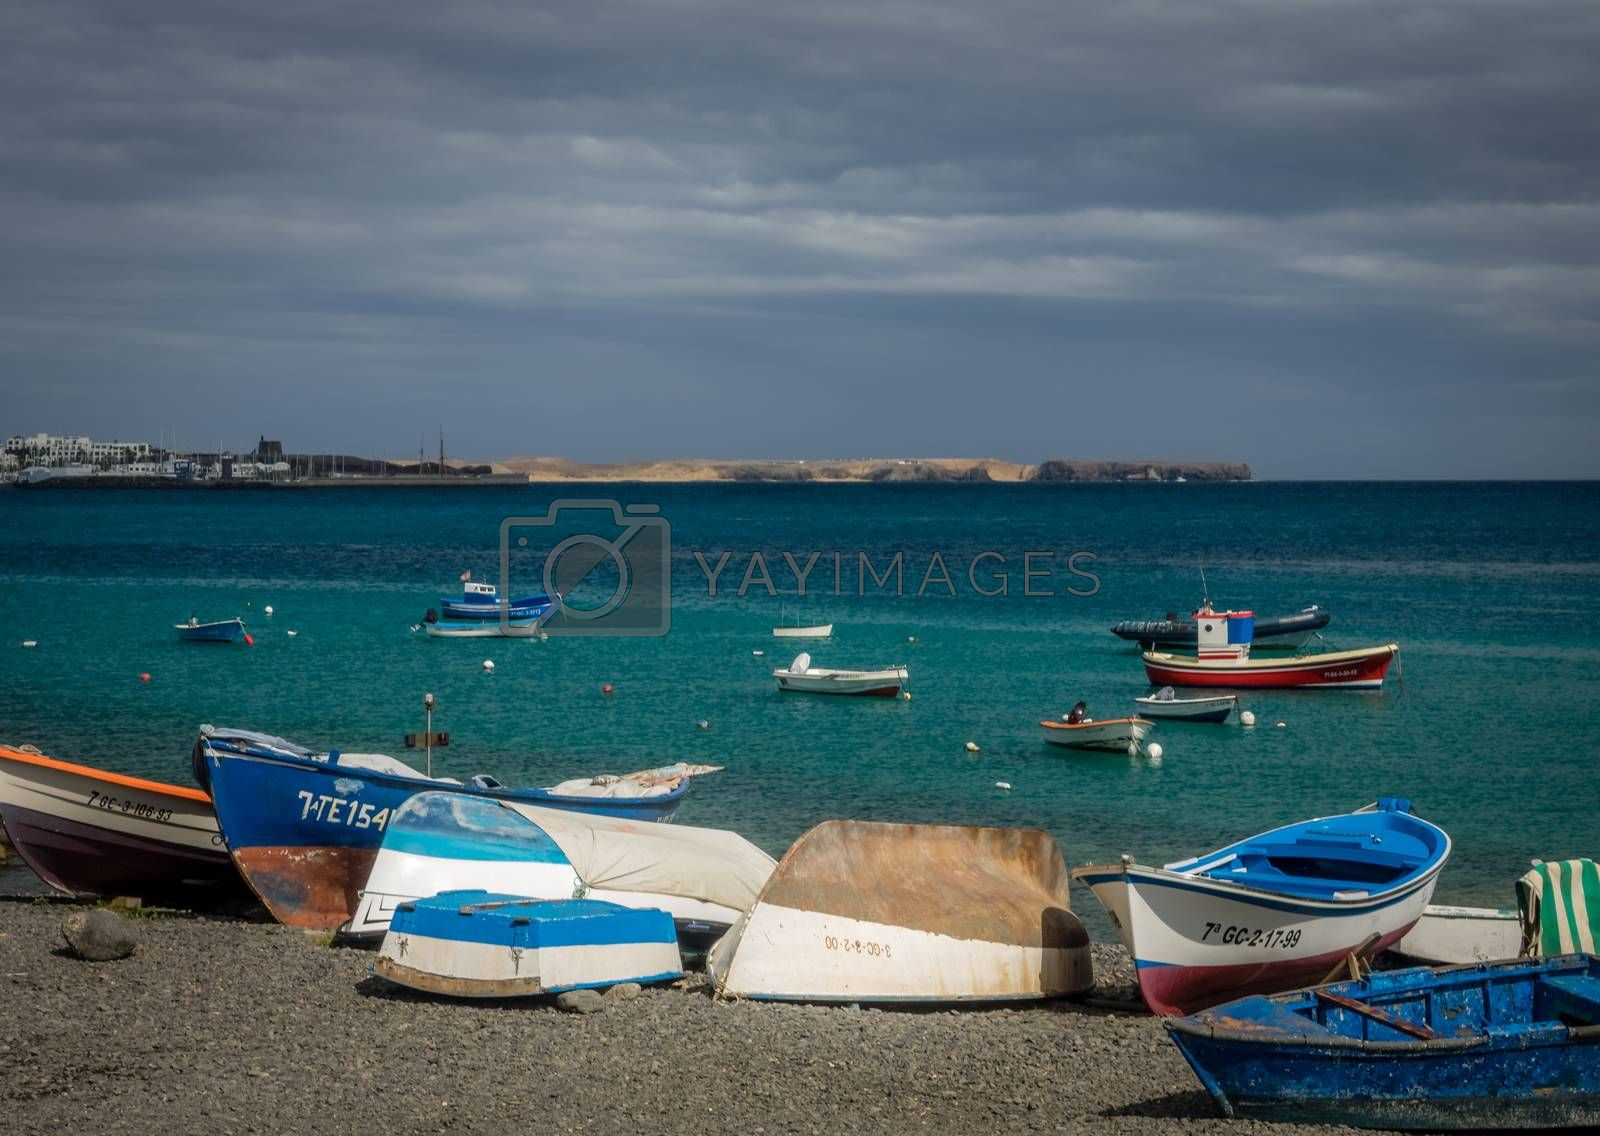 Small colorful fishermen boats on a shore in a harbour in Playa Blanca, Lanzarote, Canary Islands, Spain. Picture taken 19 April 2016